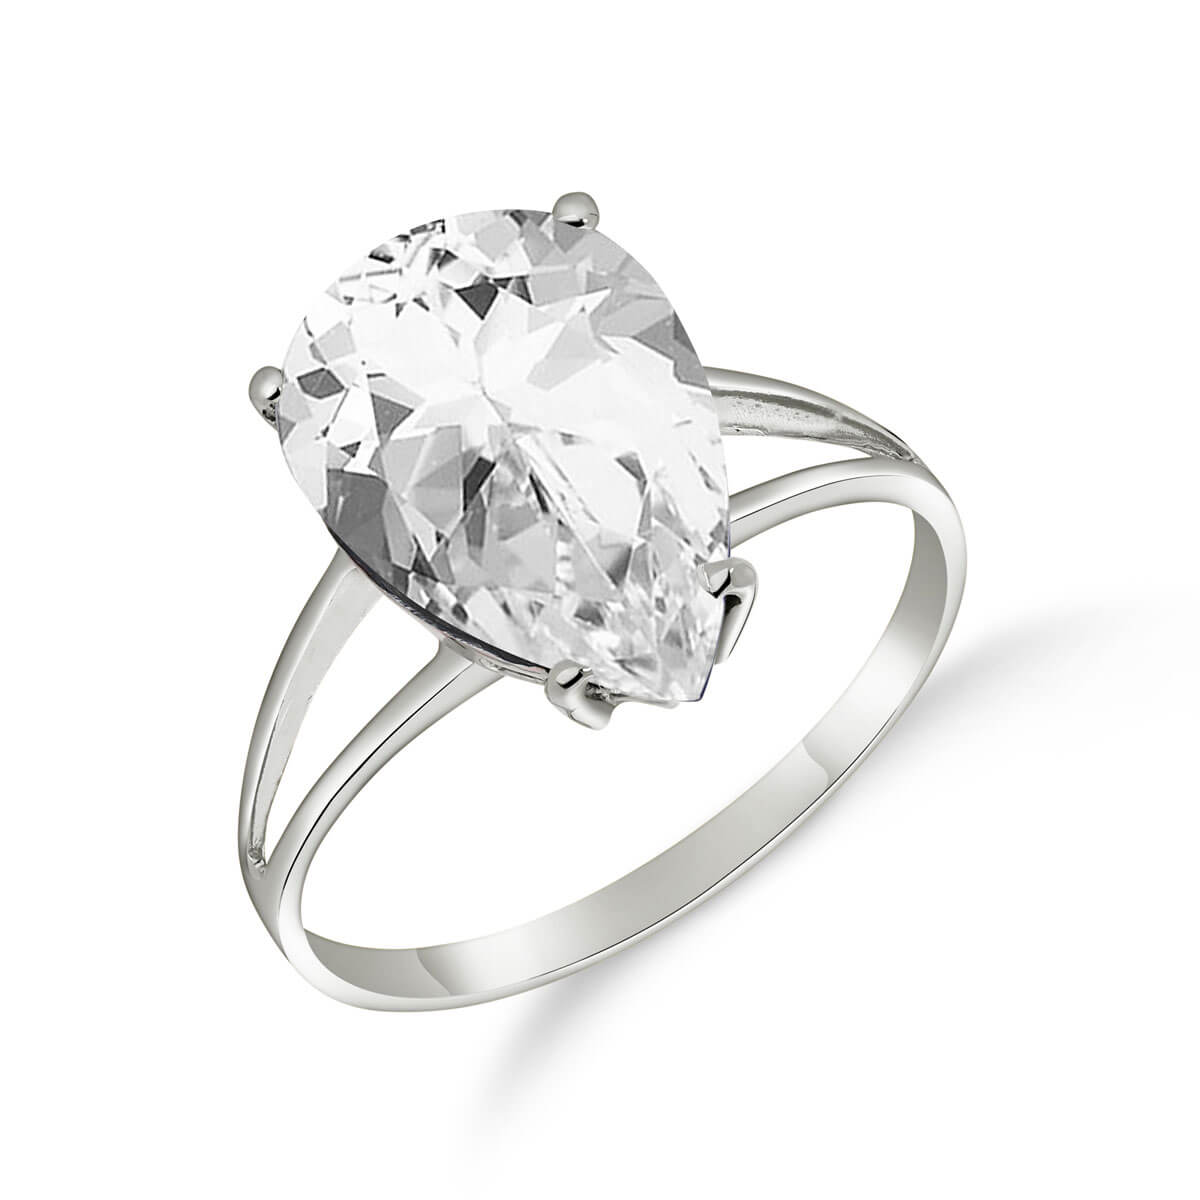 White Topaz Pear Drop Ring 5 ct in 18ct White Gold